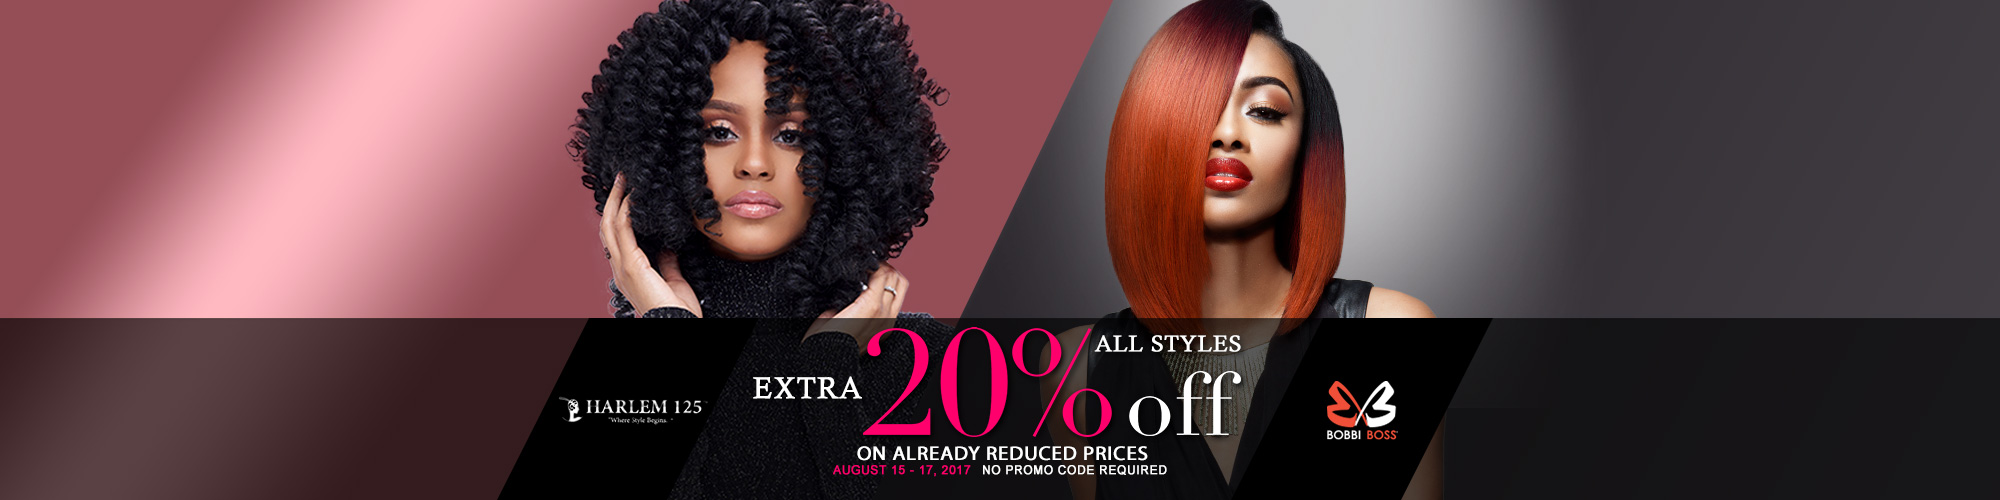 HARLEM 125 & BOBBI BOSS HAIR EXTRA 20% OFF!